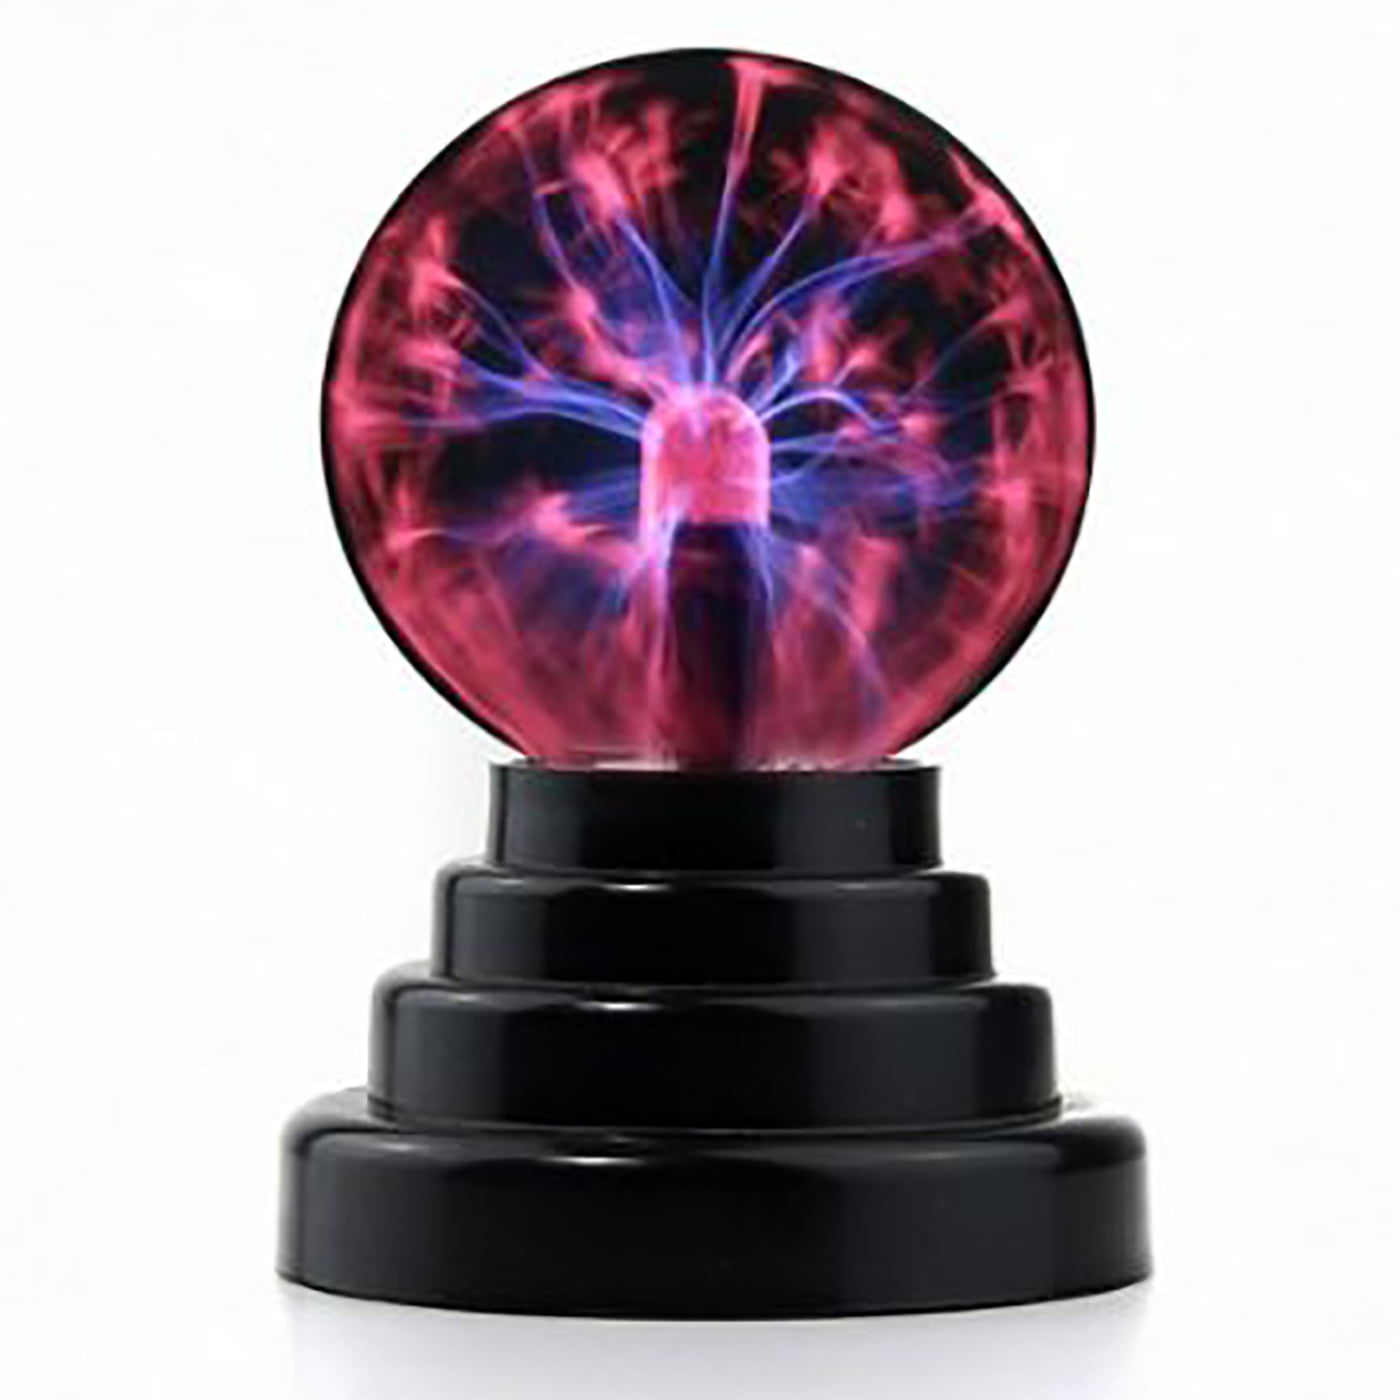 HDE Plasma Ball Lamp Light [Touch Sensitive] Nebula Sphere Globe Novelty Toy USB or Battery Powered by HDE